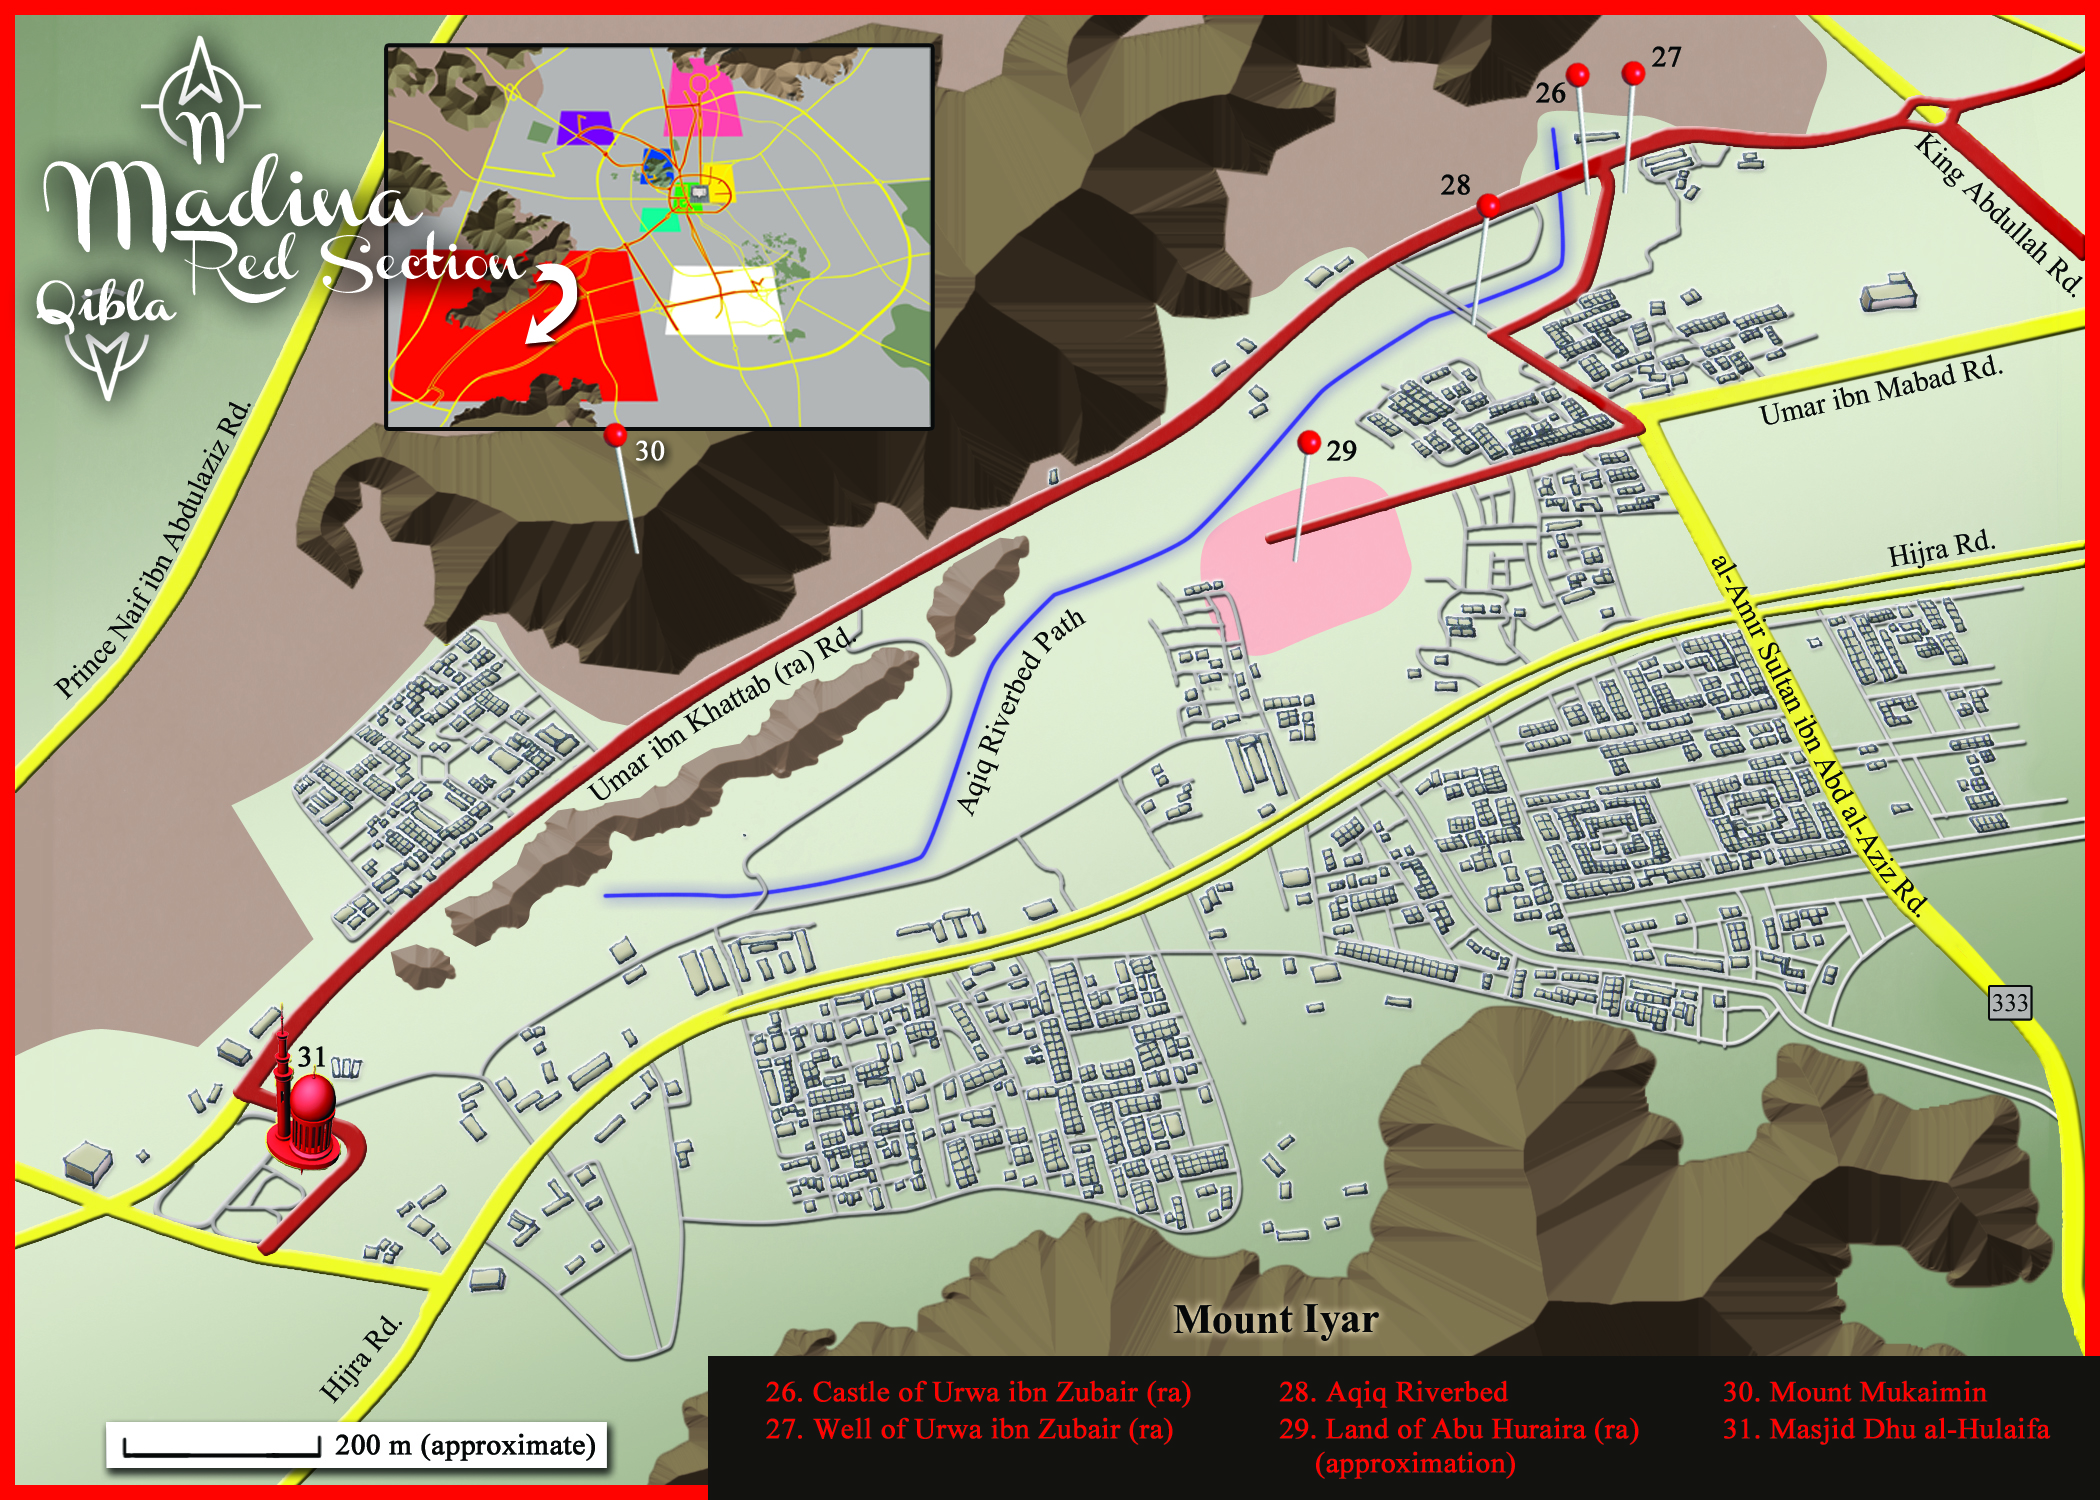 Medina Map: Red Section Detail